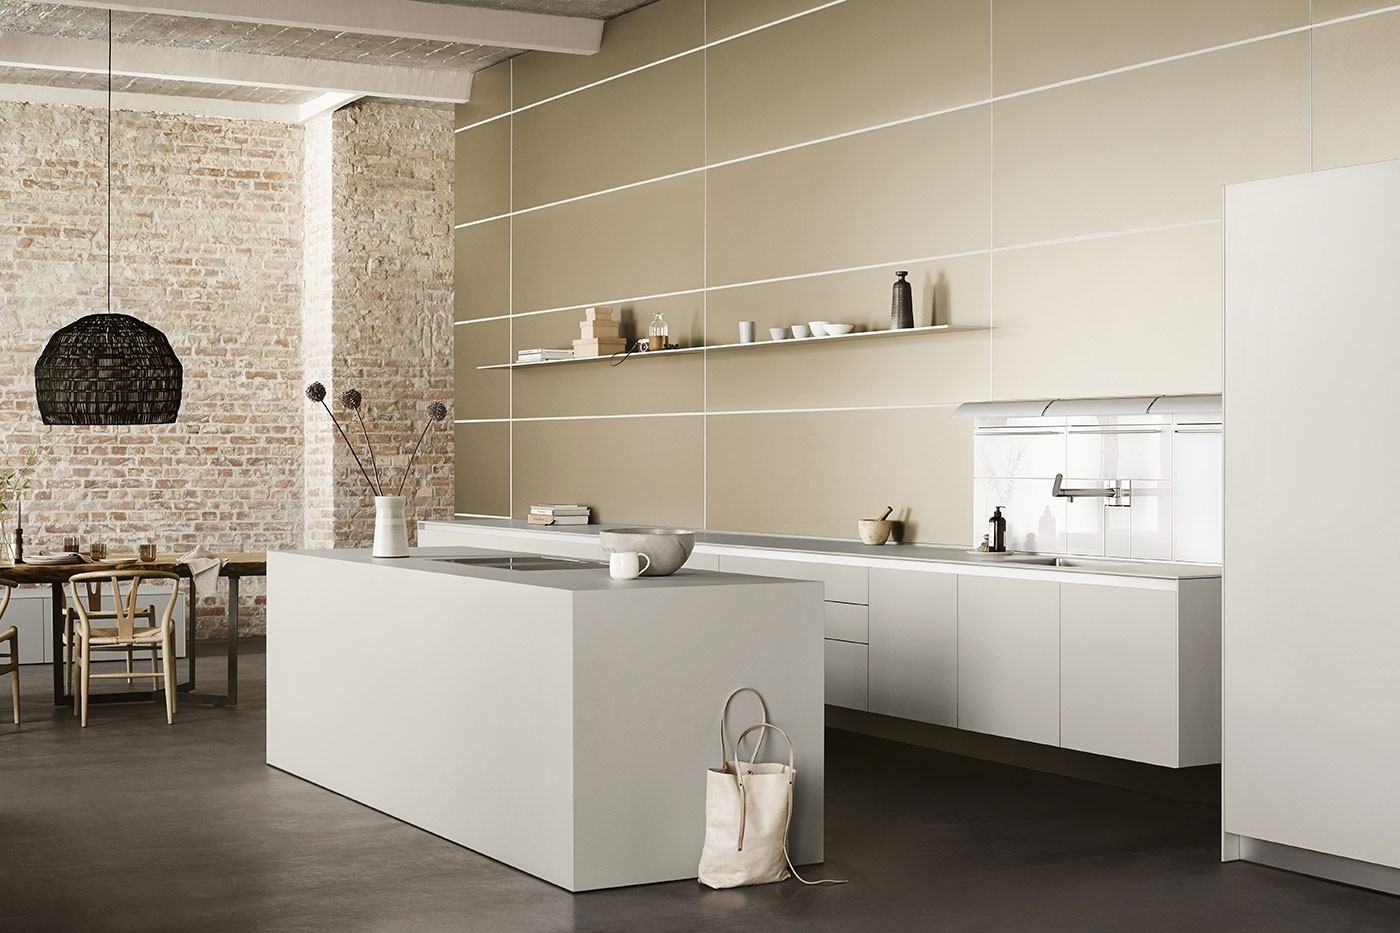 Obegi Home Bulthaup Kitchens b3 BE 2015 005